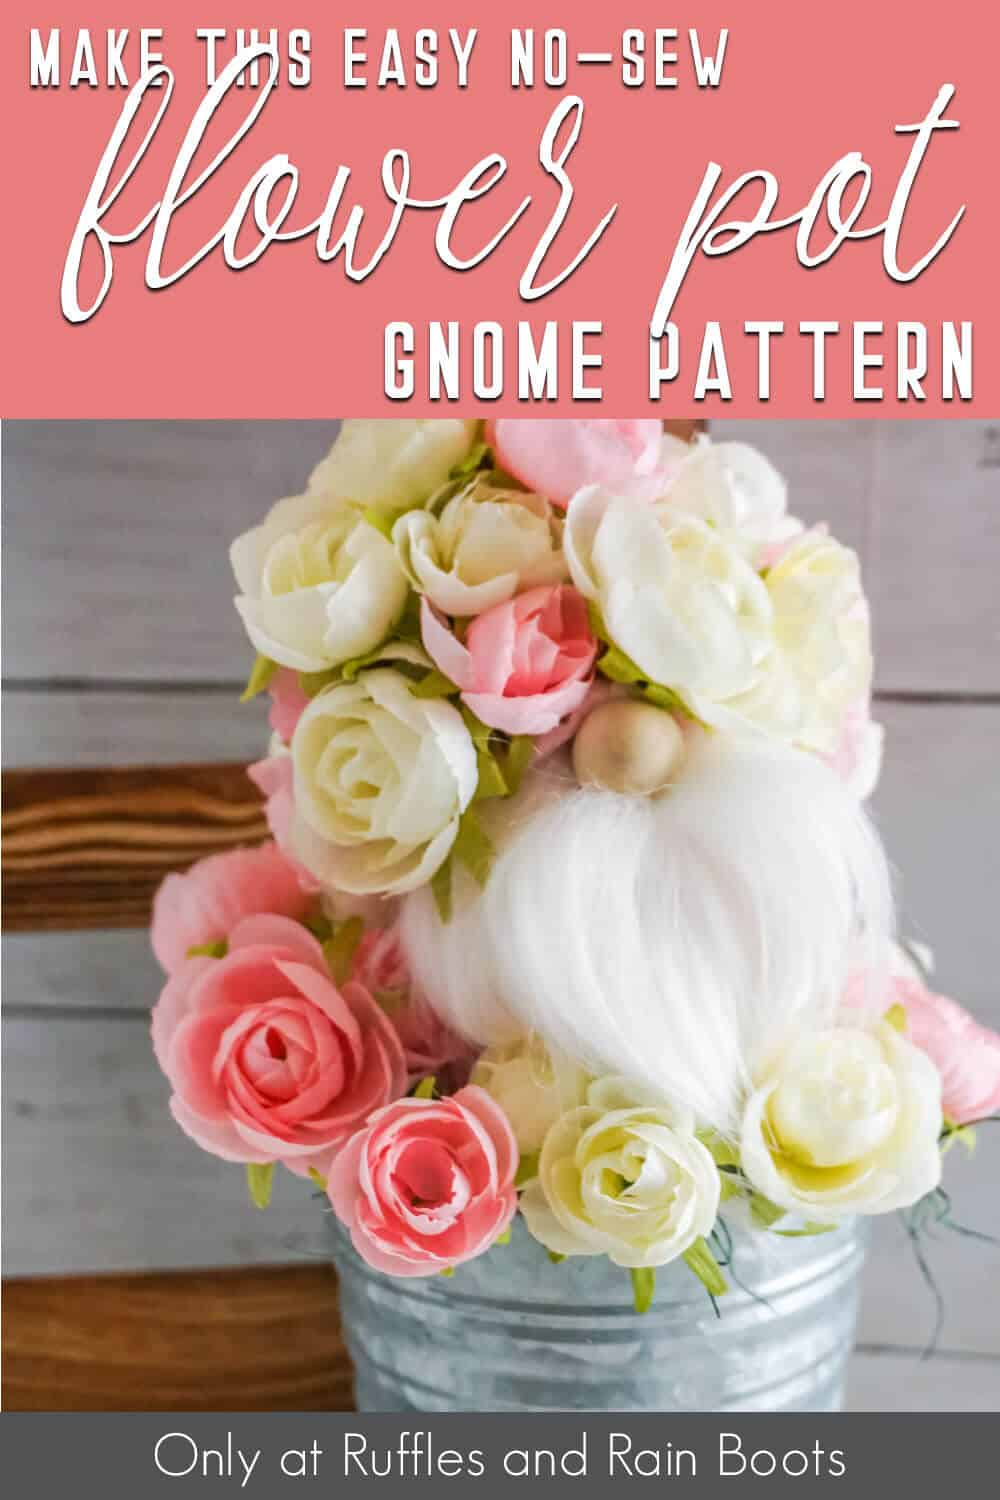 flower no-sew gnome pattern with text which reads make this easy no-sew flower pot gnome pattern